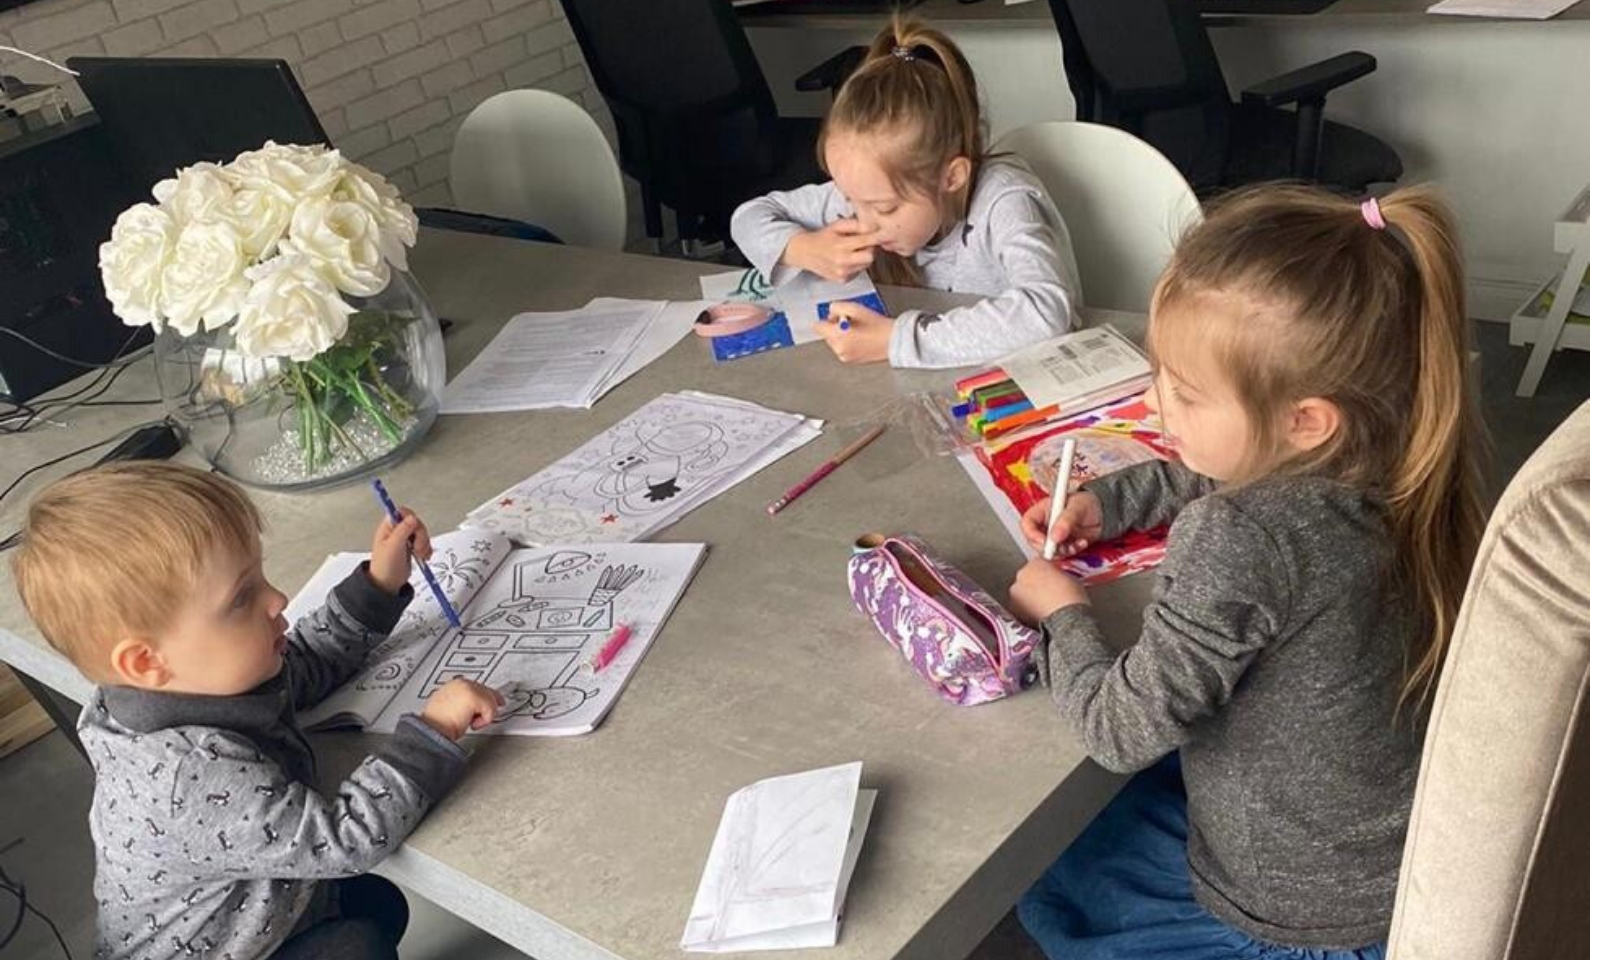 3 children drawing around a table